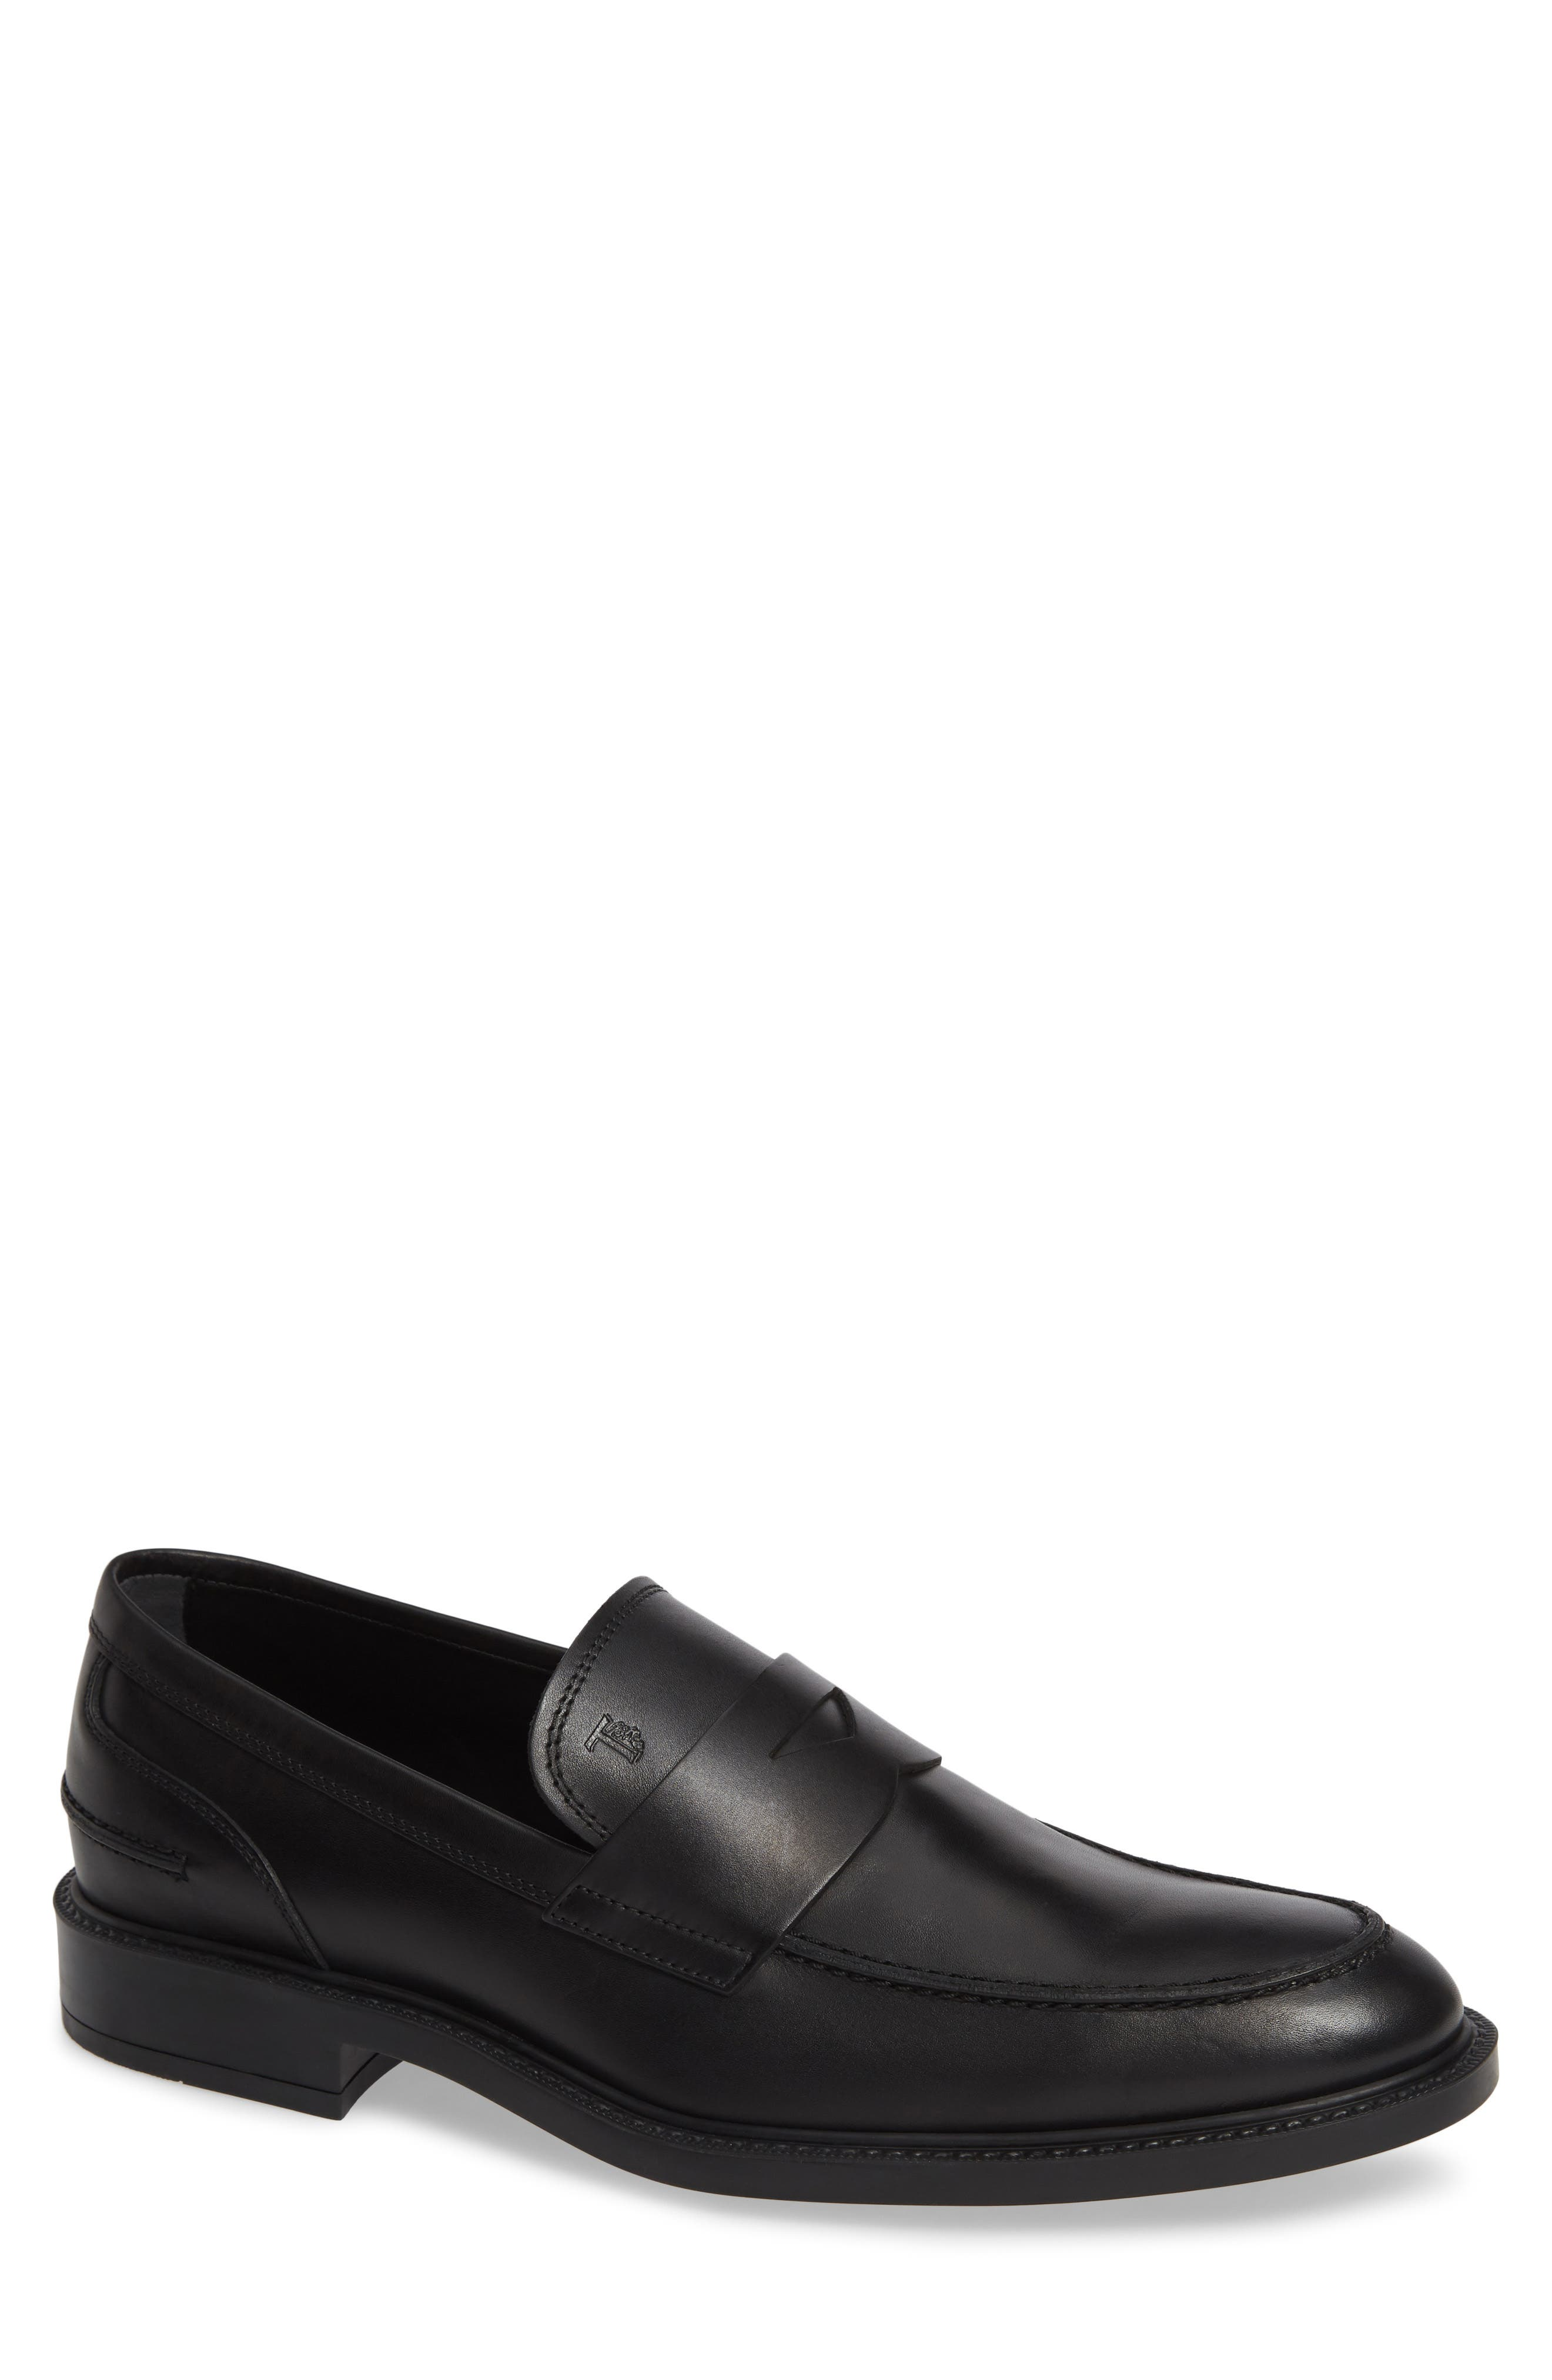 TOD'S, Mocassino Water Repellent Penny Loafer, Main thumbnail 1, color, BLACK/ BLACK